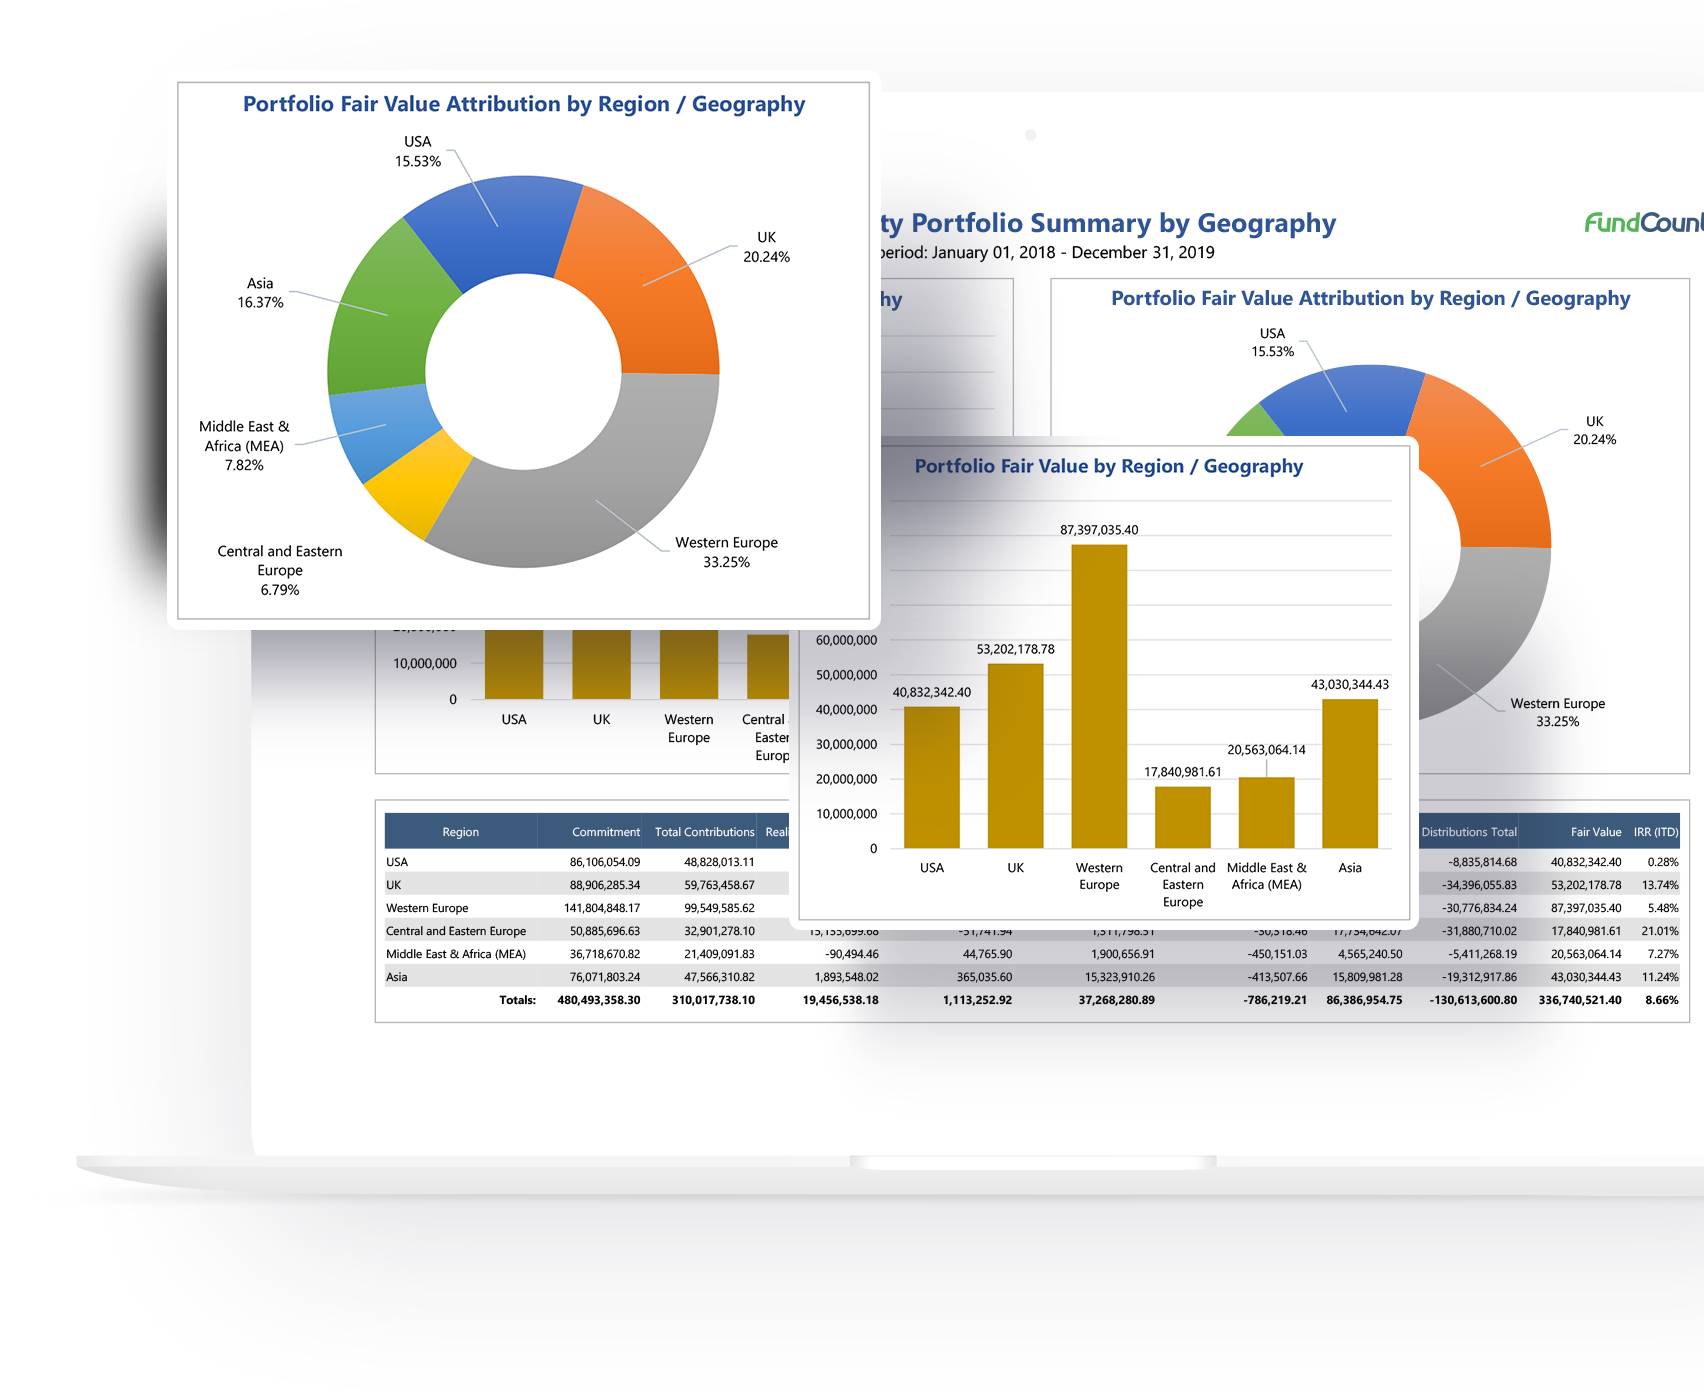 Meet the need for transparency and client communications with our fund accounting and integrated CRM solution. FundCount supports the complex accounting and reporting requirements of private equity funds with clarity, accuracy and efficiency.